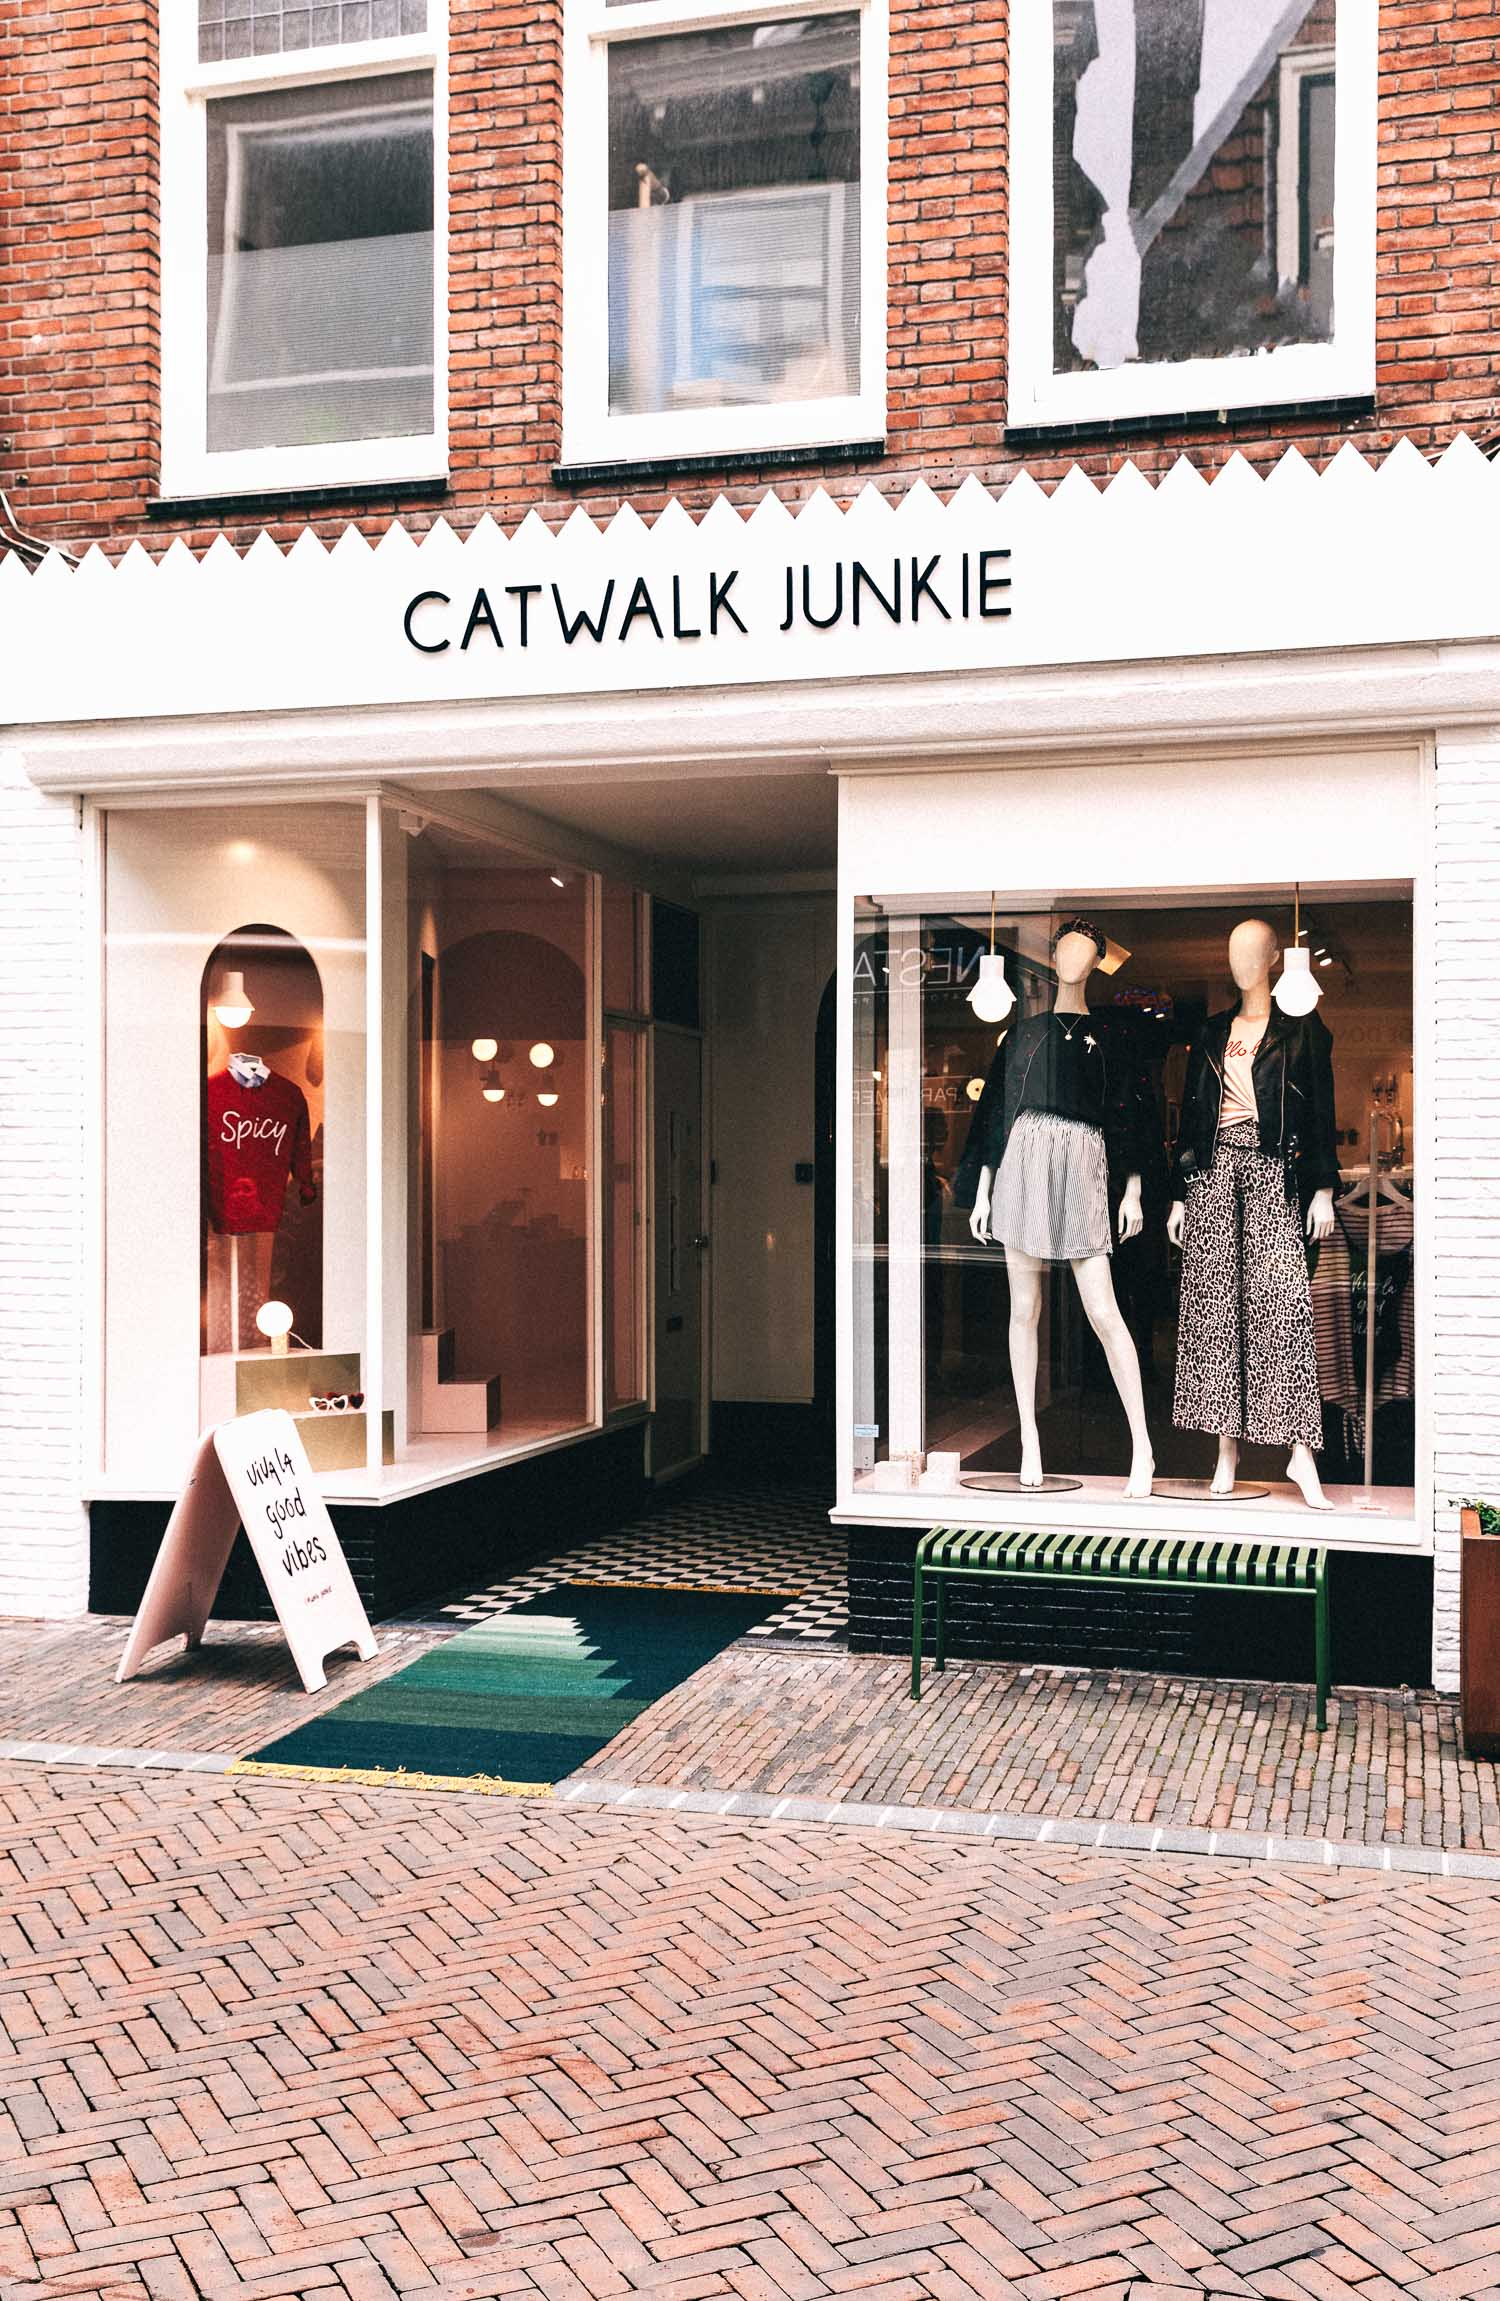 Catwalk_Junkie_Interior_store_Utrecht_photography_by_On_a_hazy_morning007.jpg